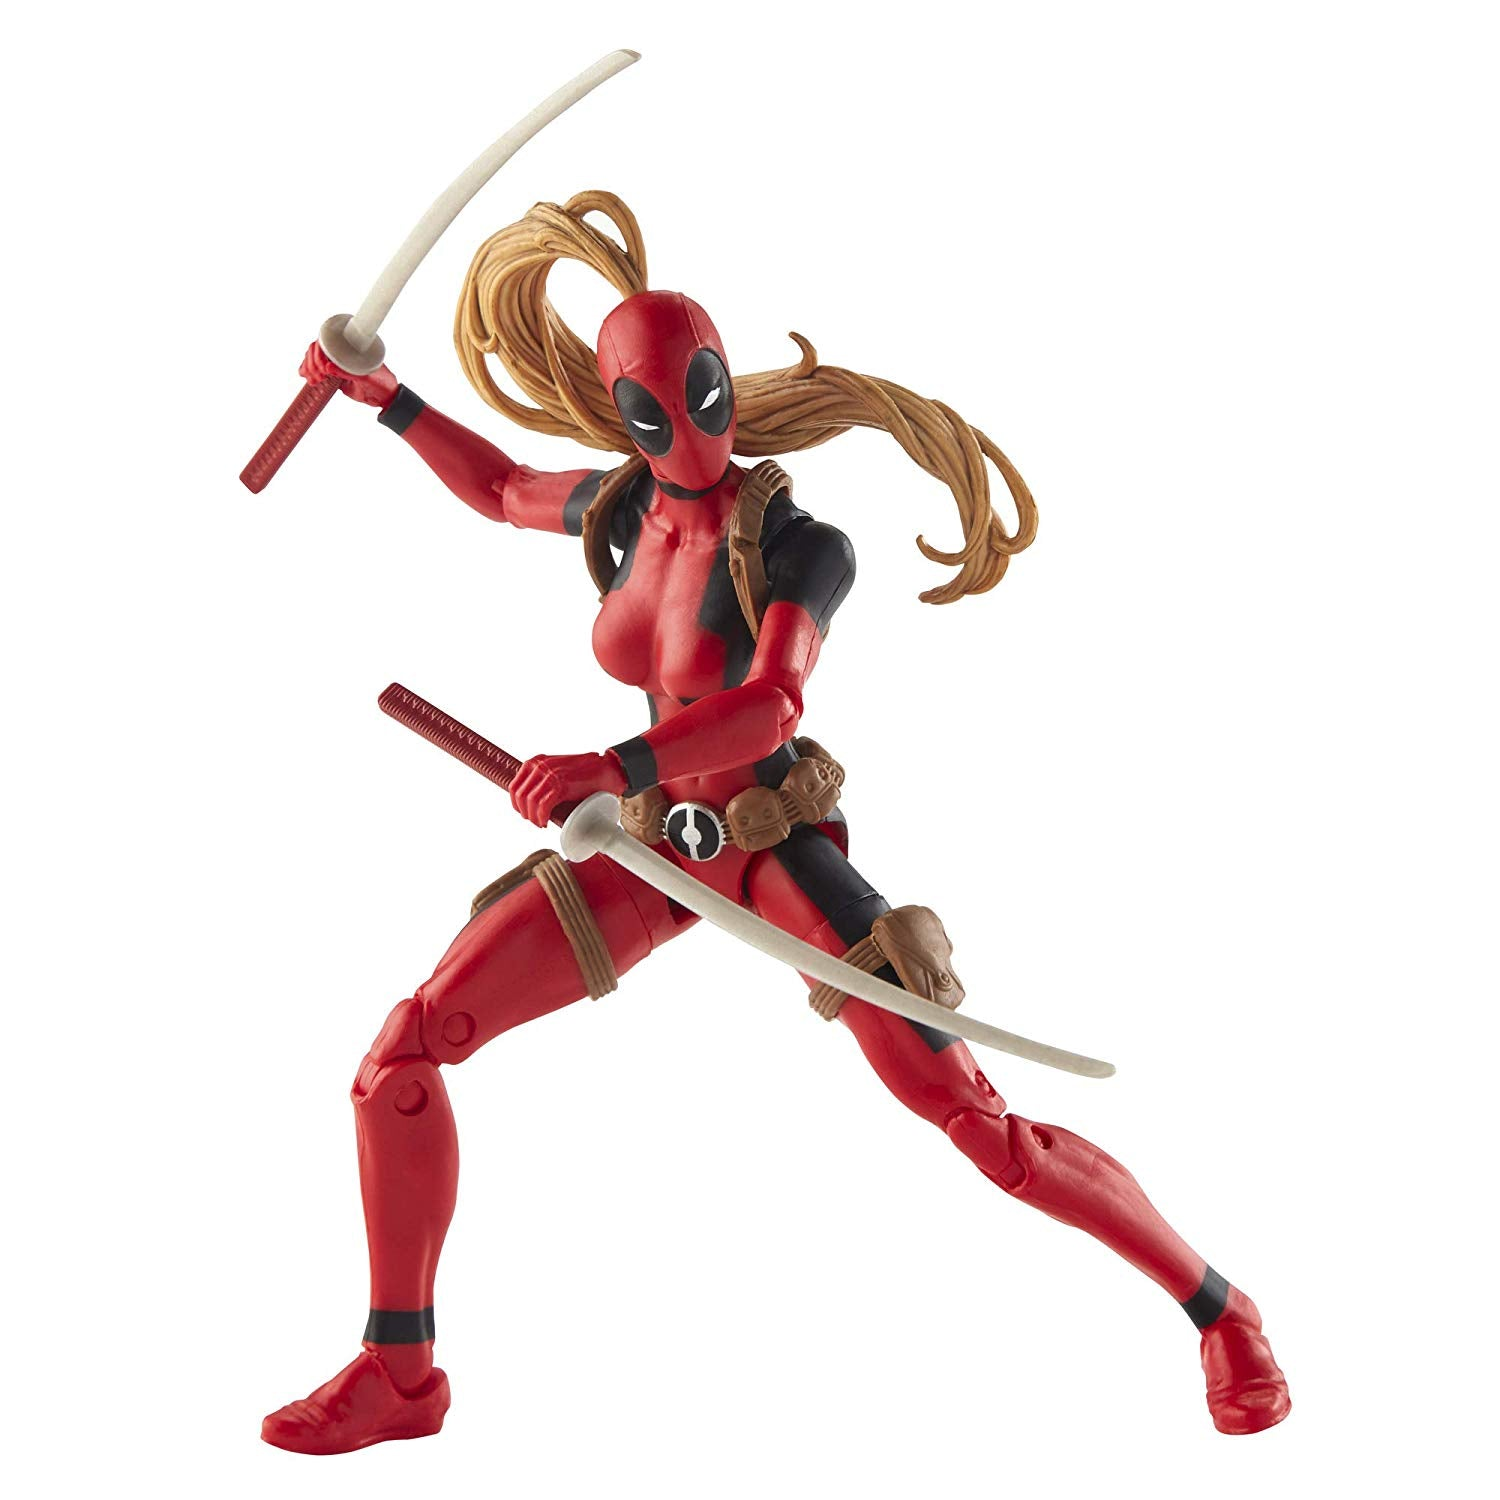 Hasbro - Marvel Legends - Dr. Karl Lykos (Marvel's Sauron) BAF - Deadpool - Lady Deadpool Figure (E2923)